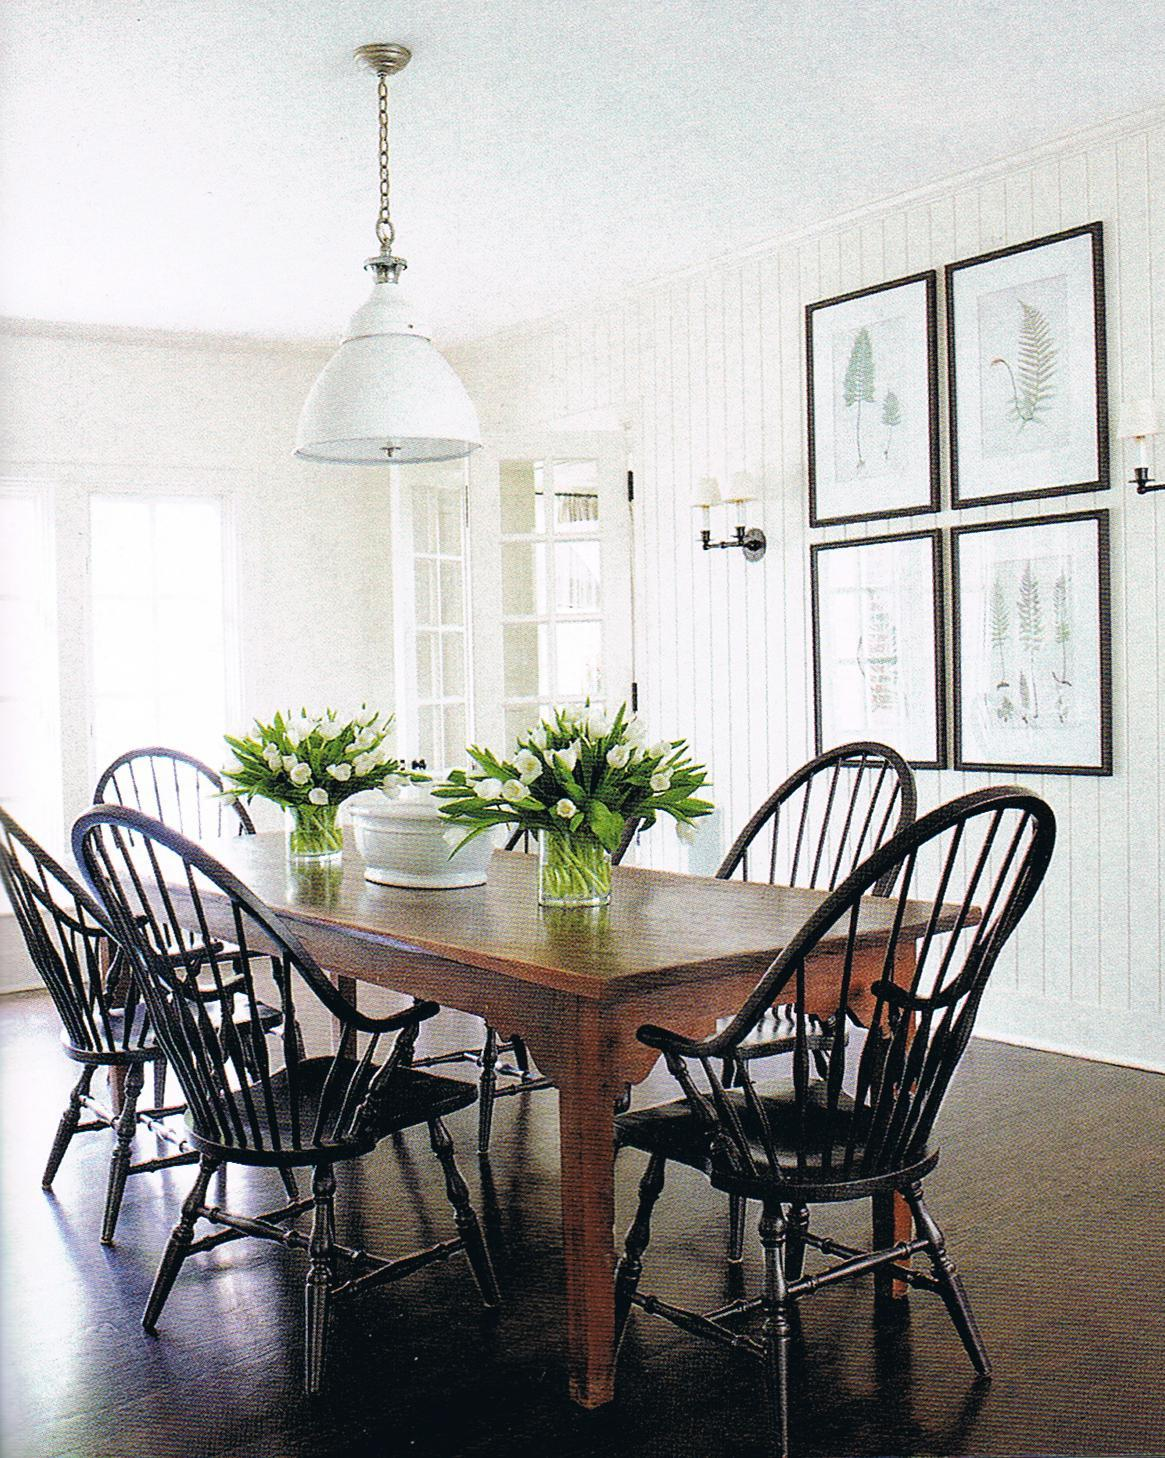 Journey Home Interior Design for Canberra Windsor Chairs and